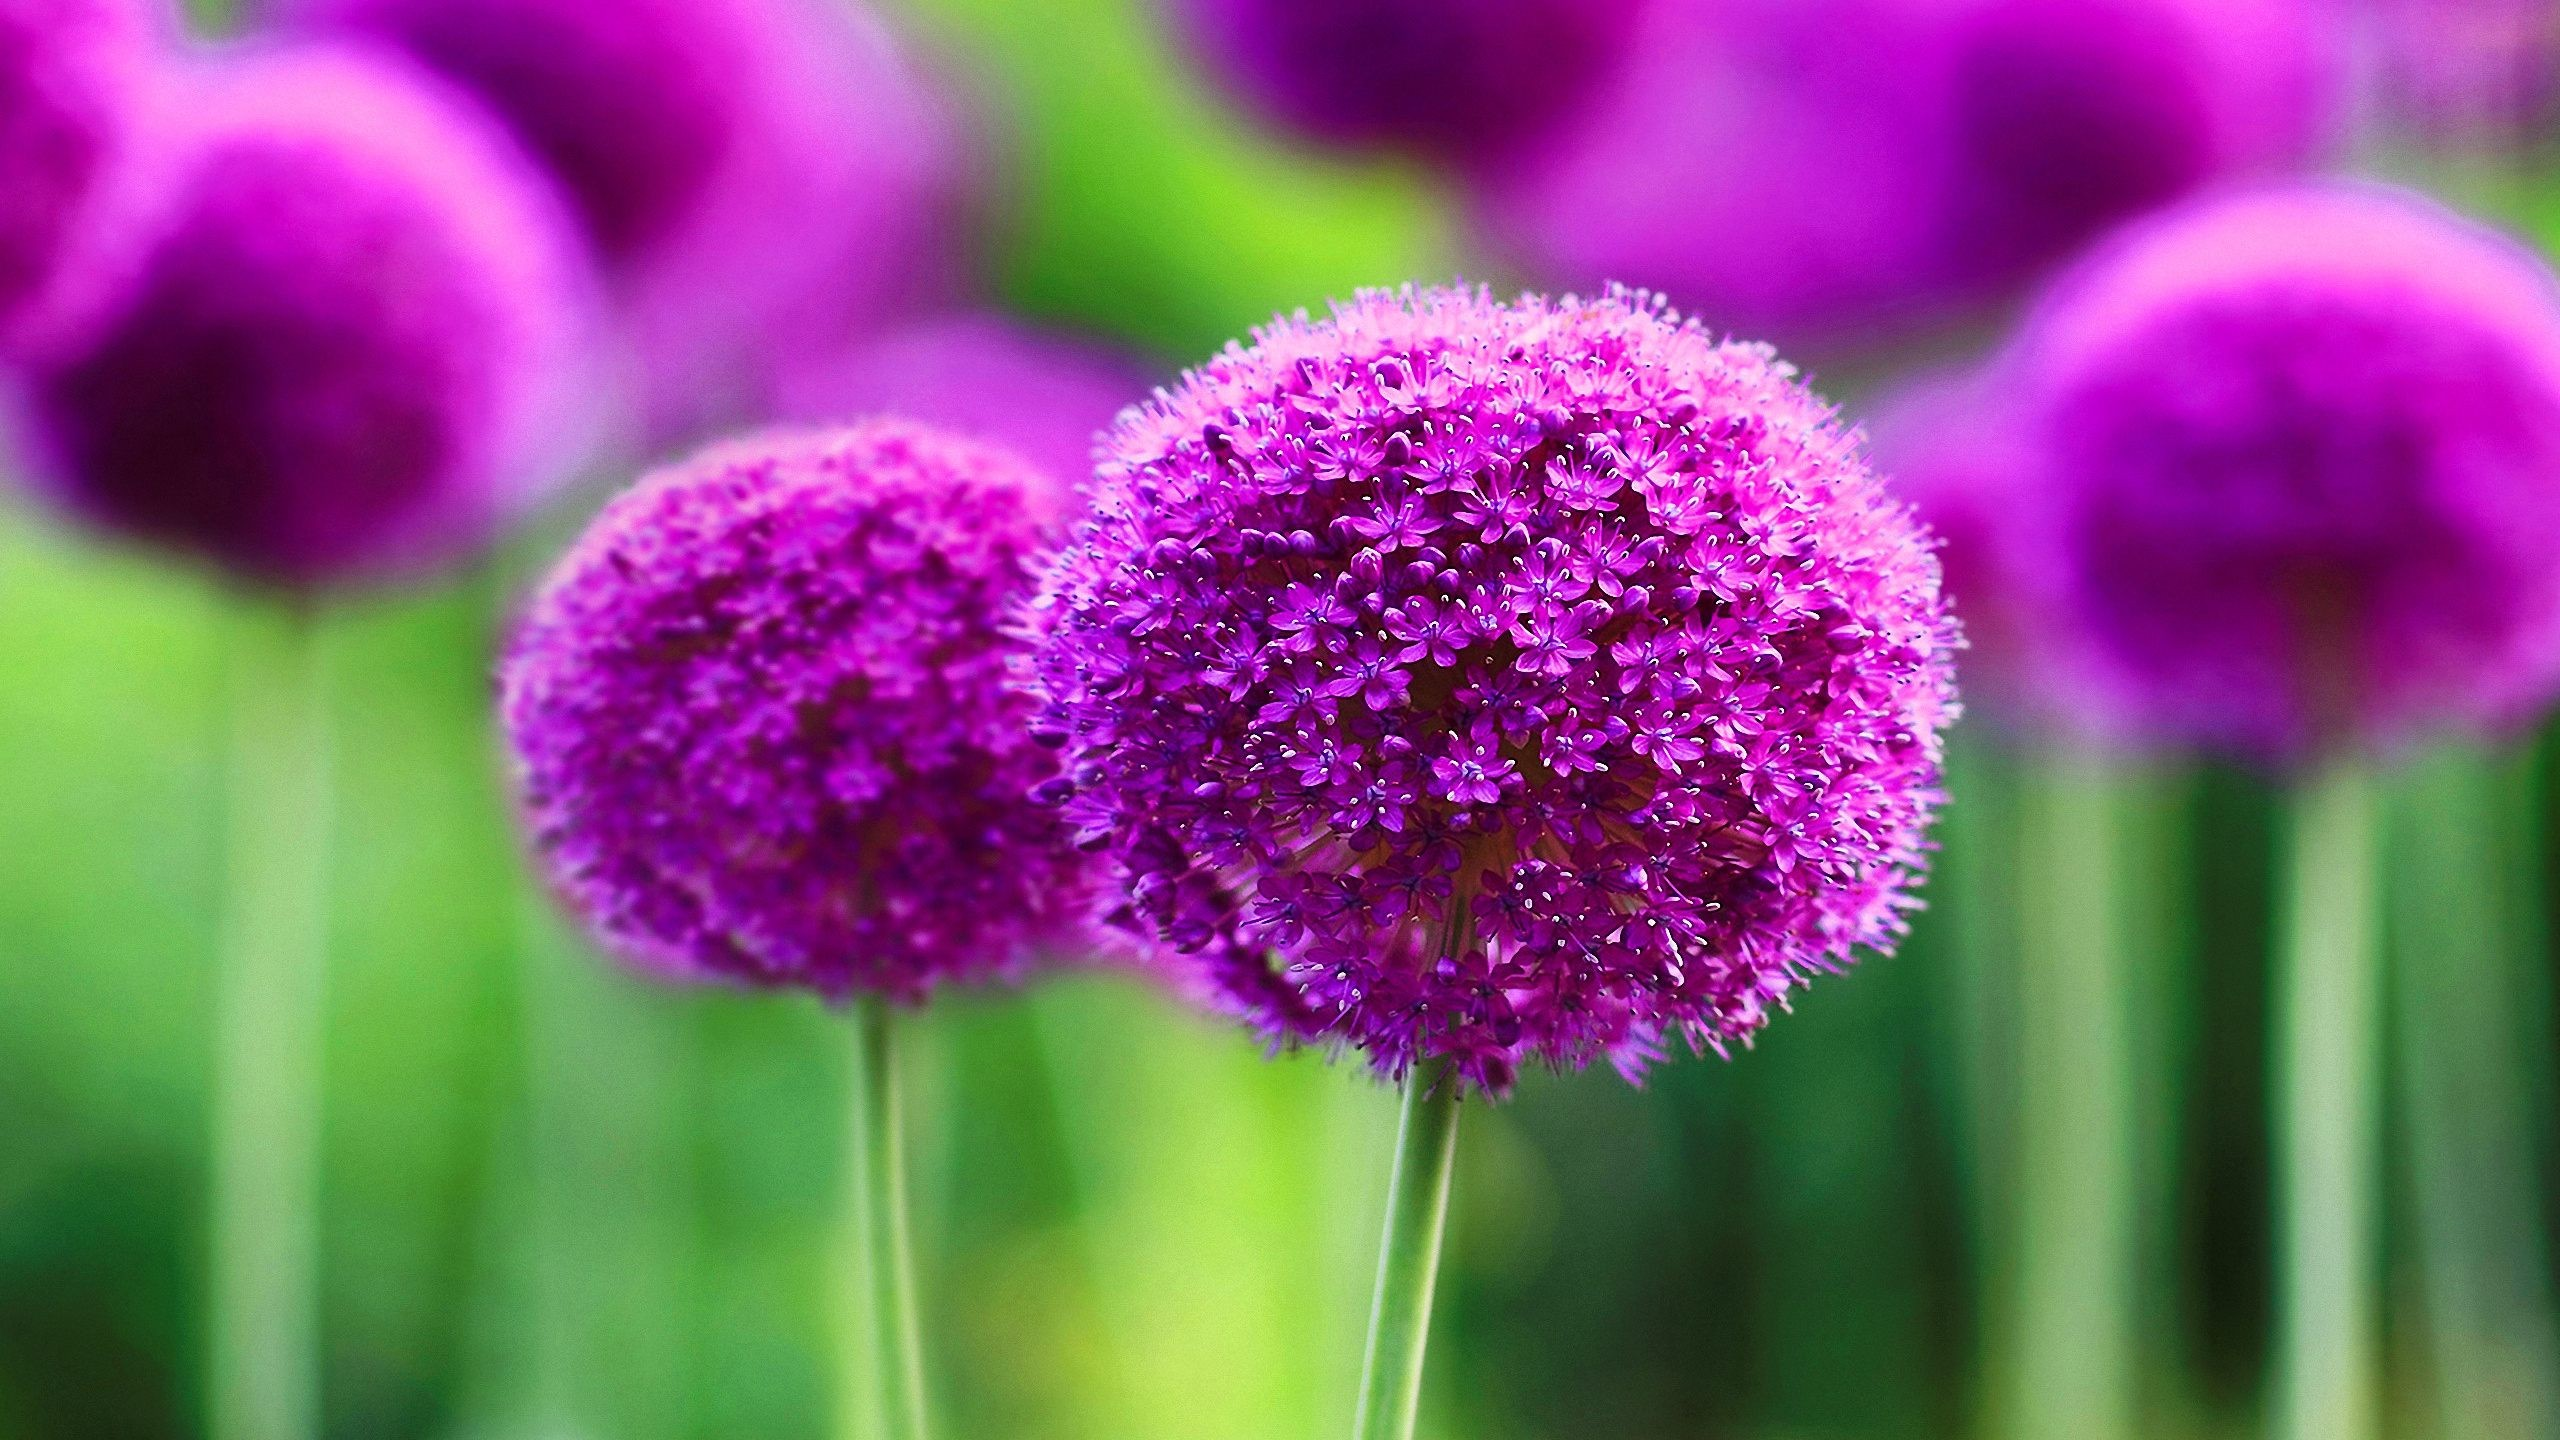 Purple Flower Wallpapers, Purple Flower Wallpapers for PC, HVGA 3:2 ...